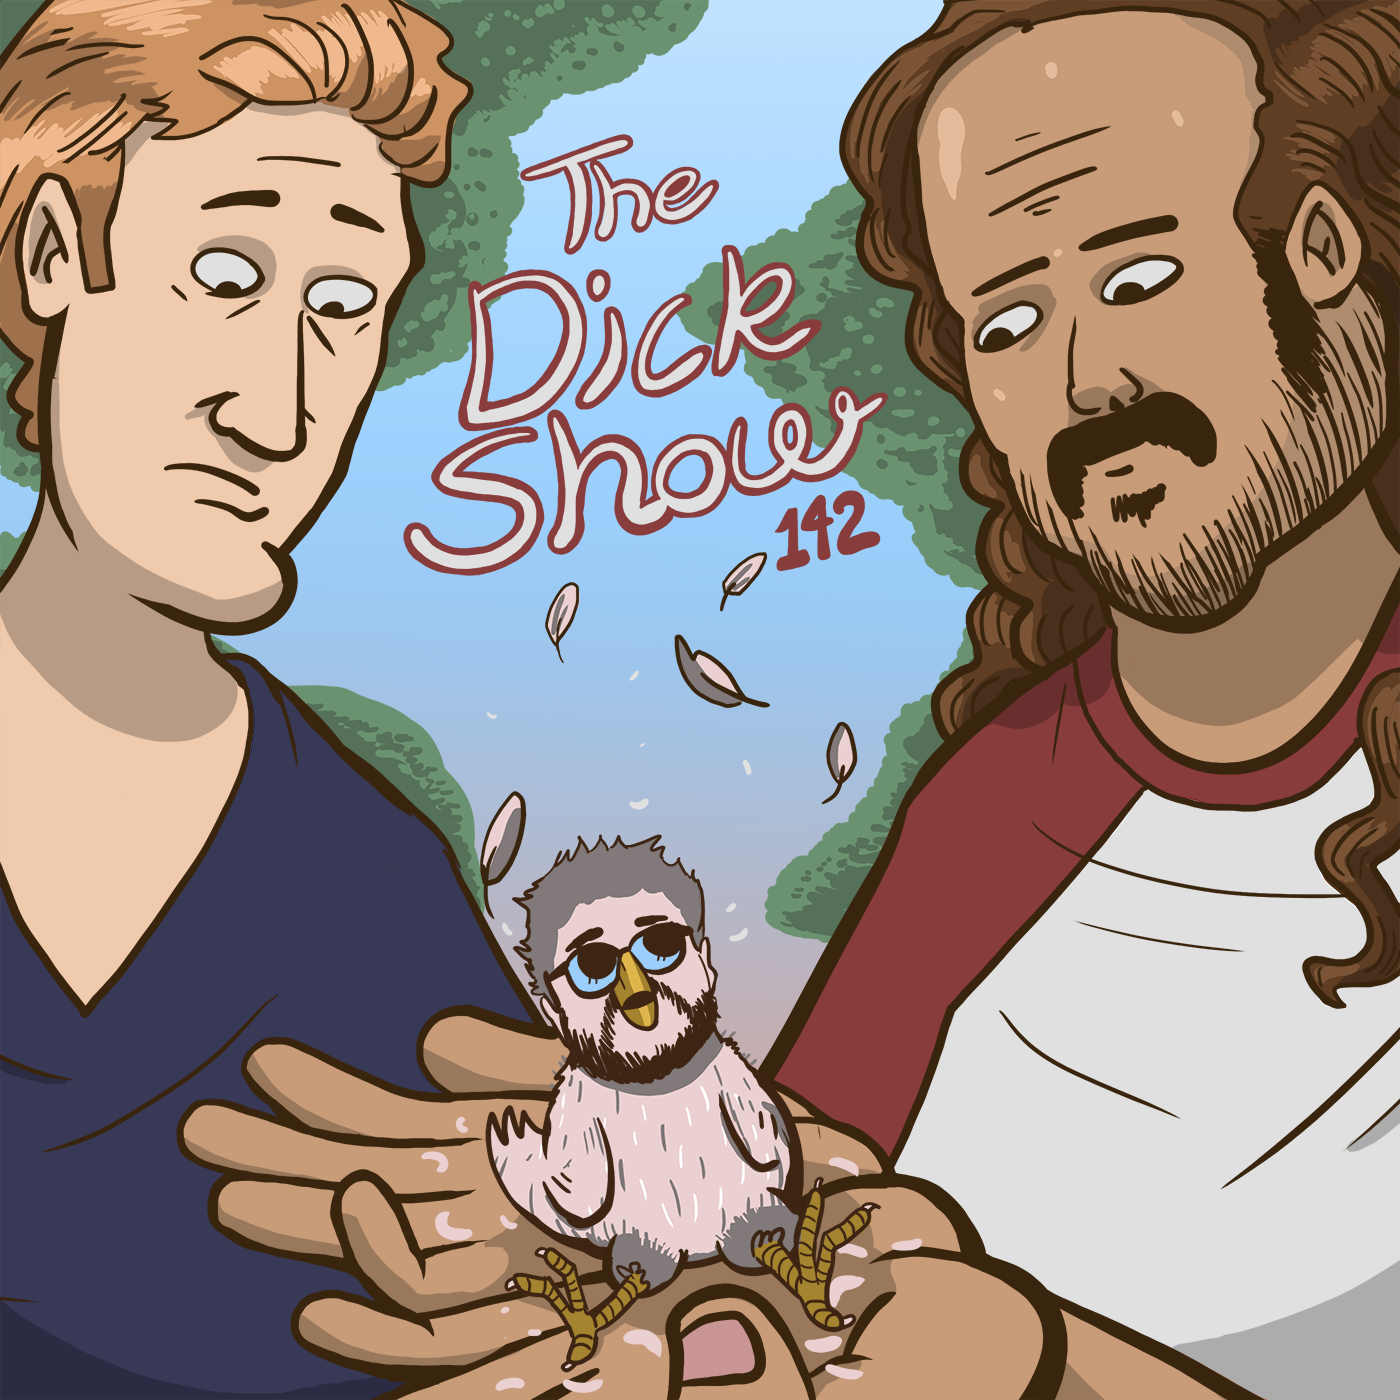 Episode 142 - Dick on The Butt Conspiracy - The Dick Show